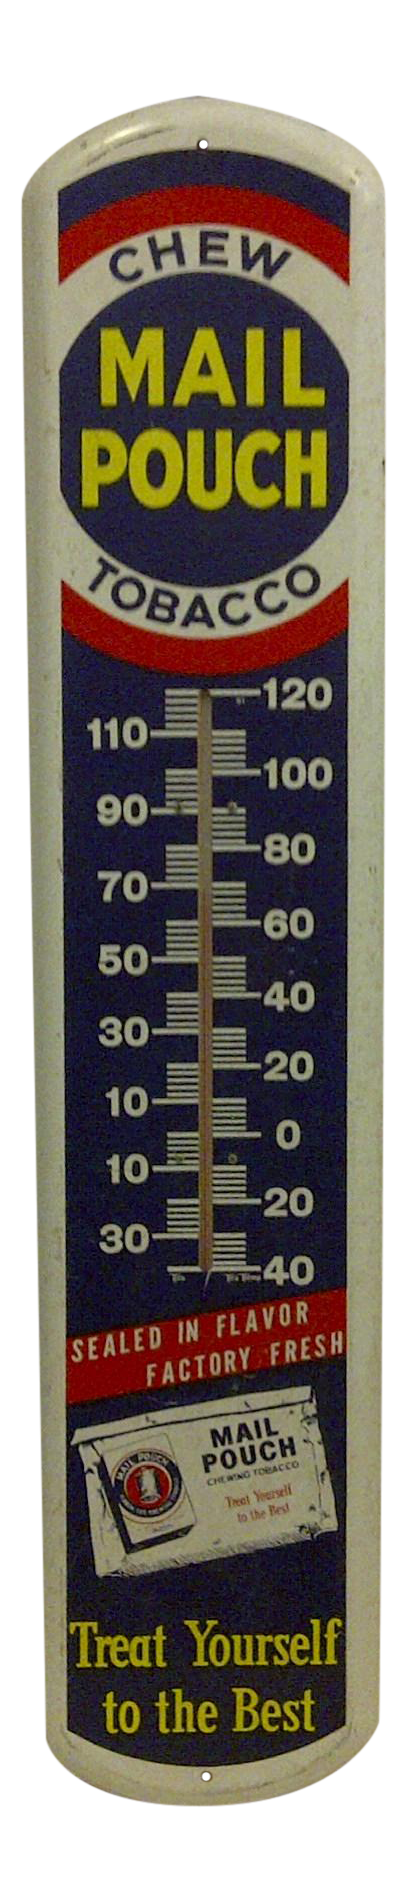 Vintage Metal Quot Mail Pouch Quot Advertising Thermometer Chairish